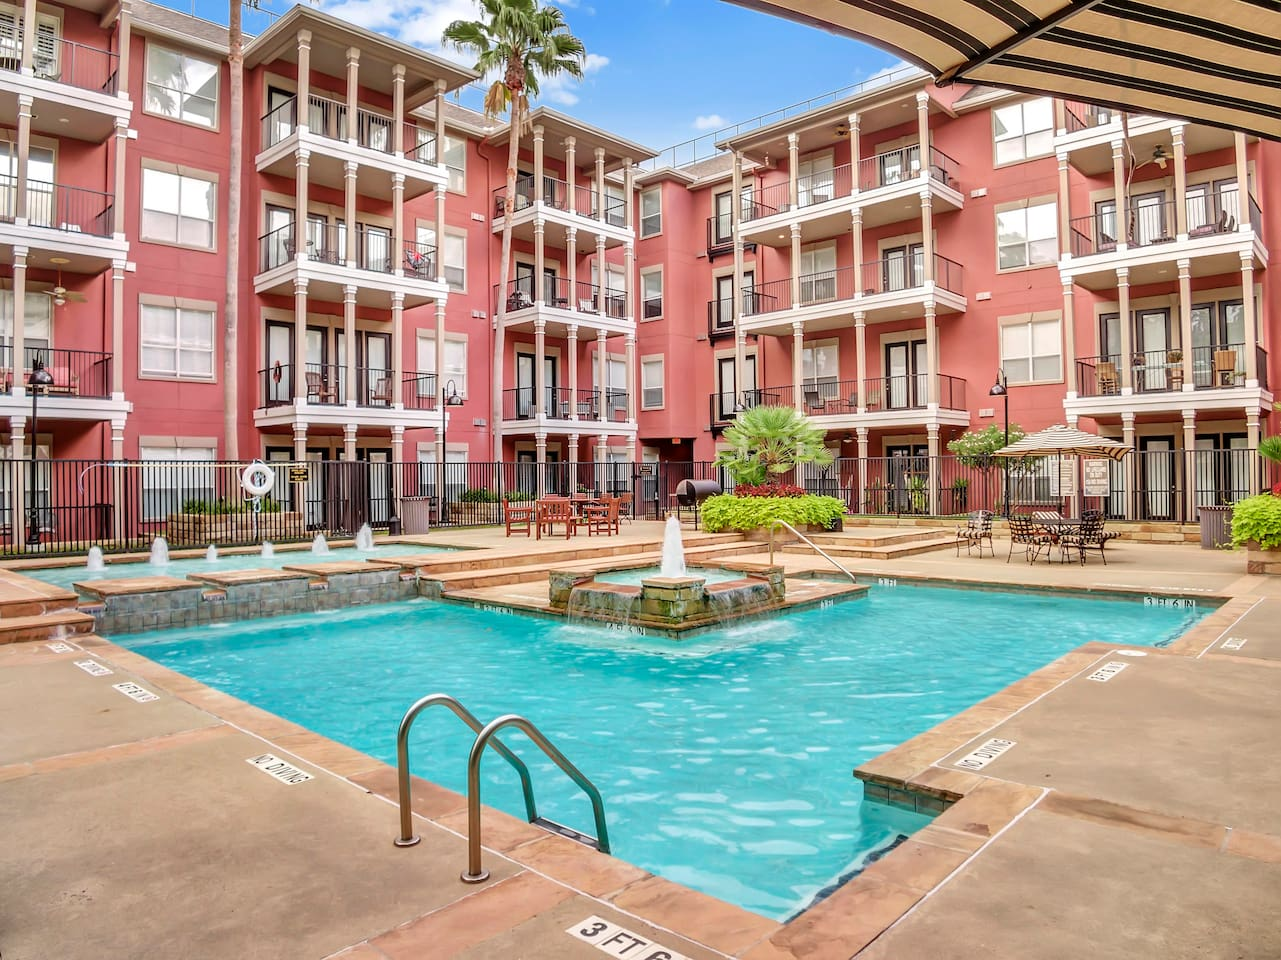 Enjoy resort-style pool, tanning pool, gas grills, lounge seating, peace and quiet at 2400 McCue!